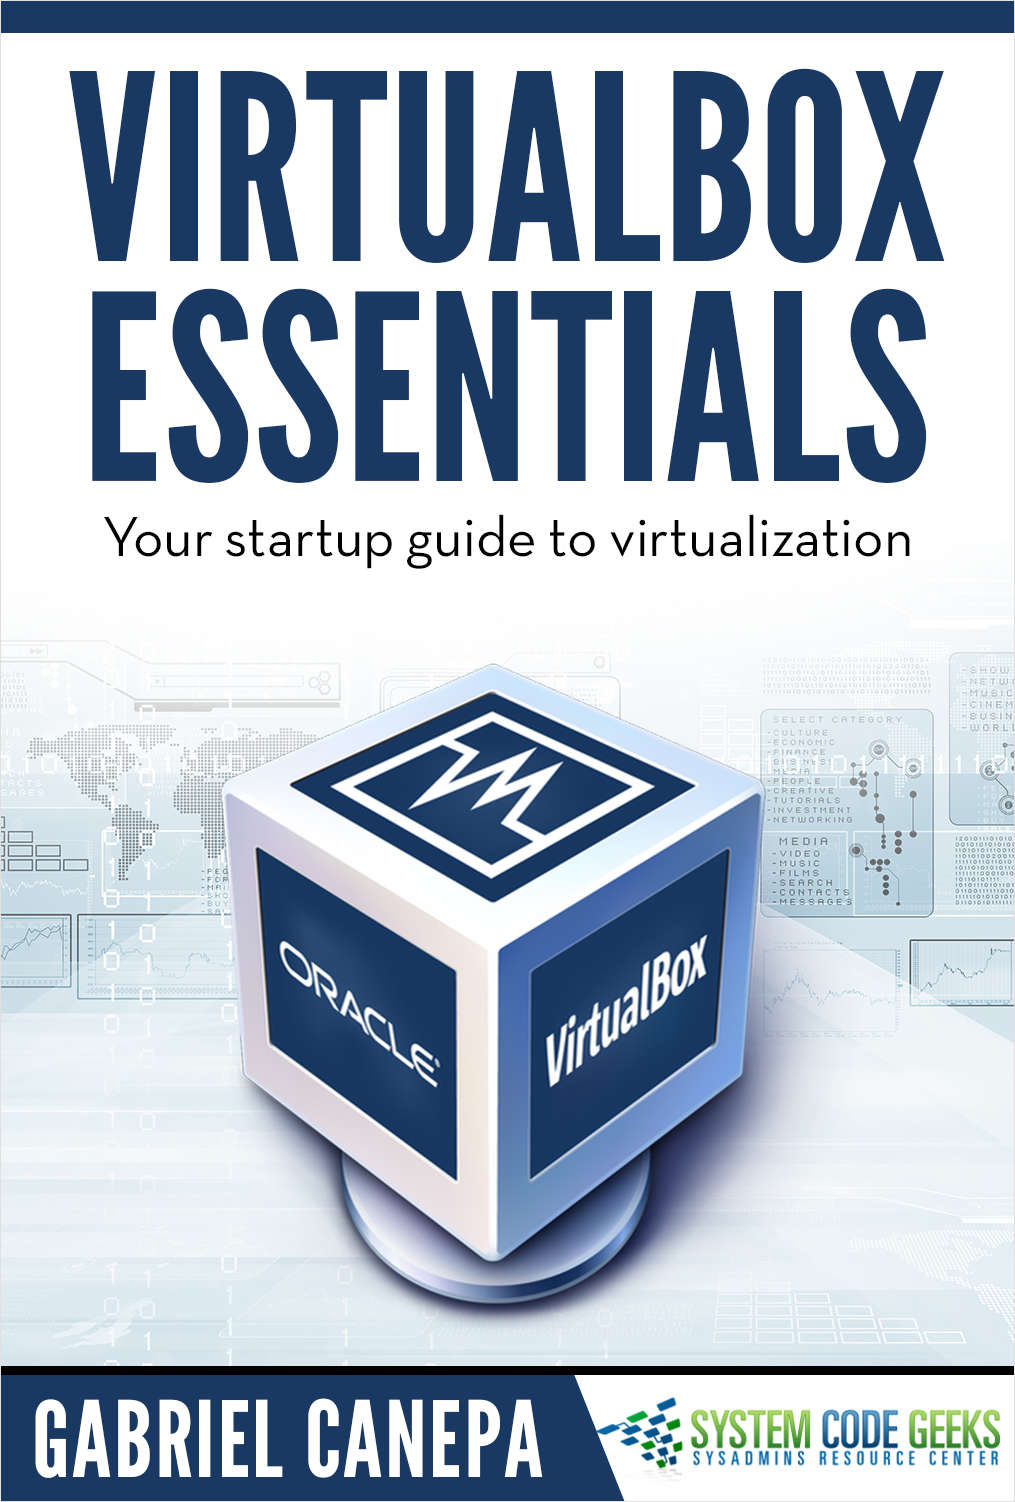 VirtualBox Essentials Guide